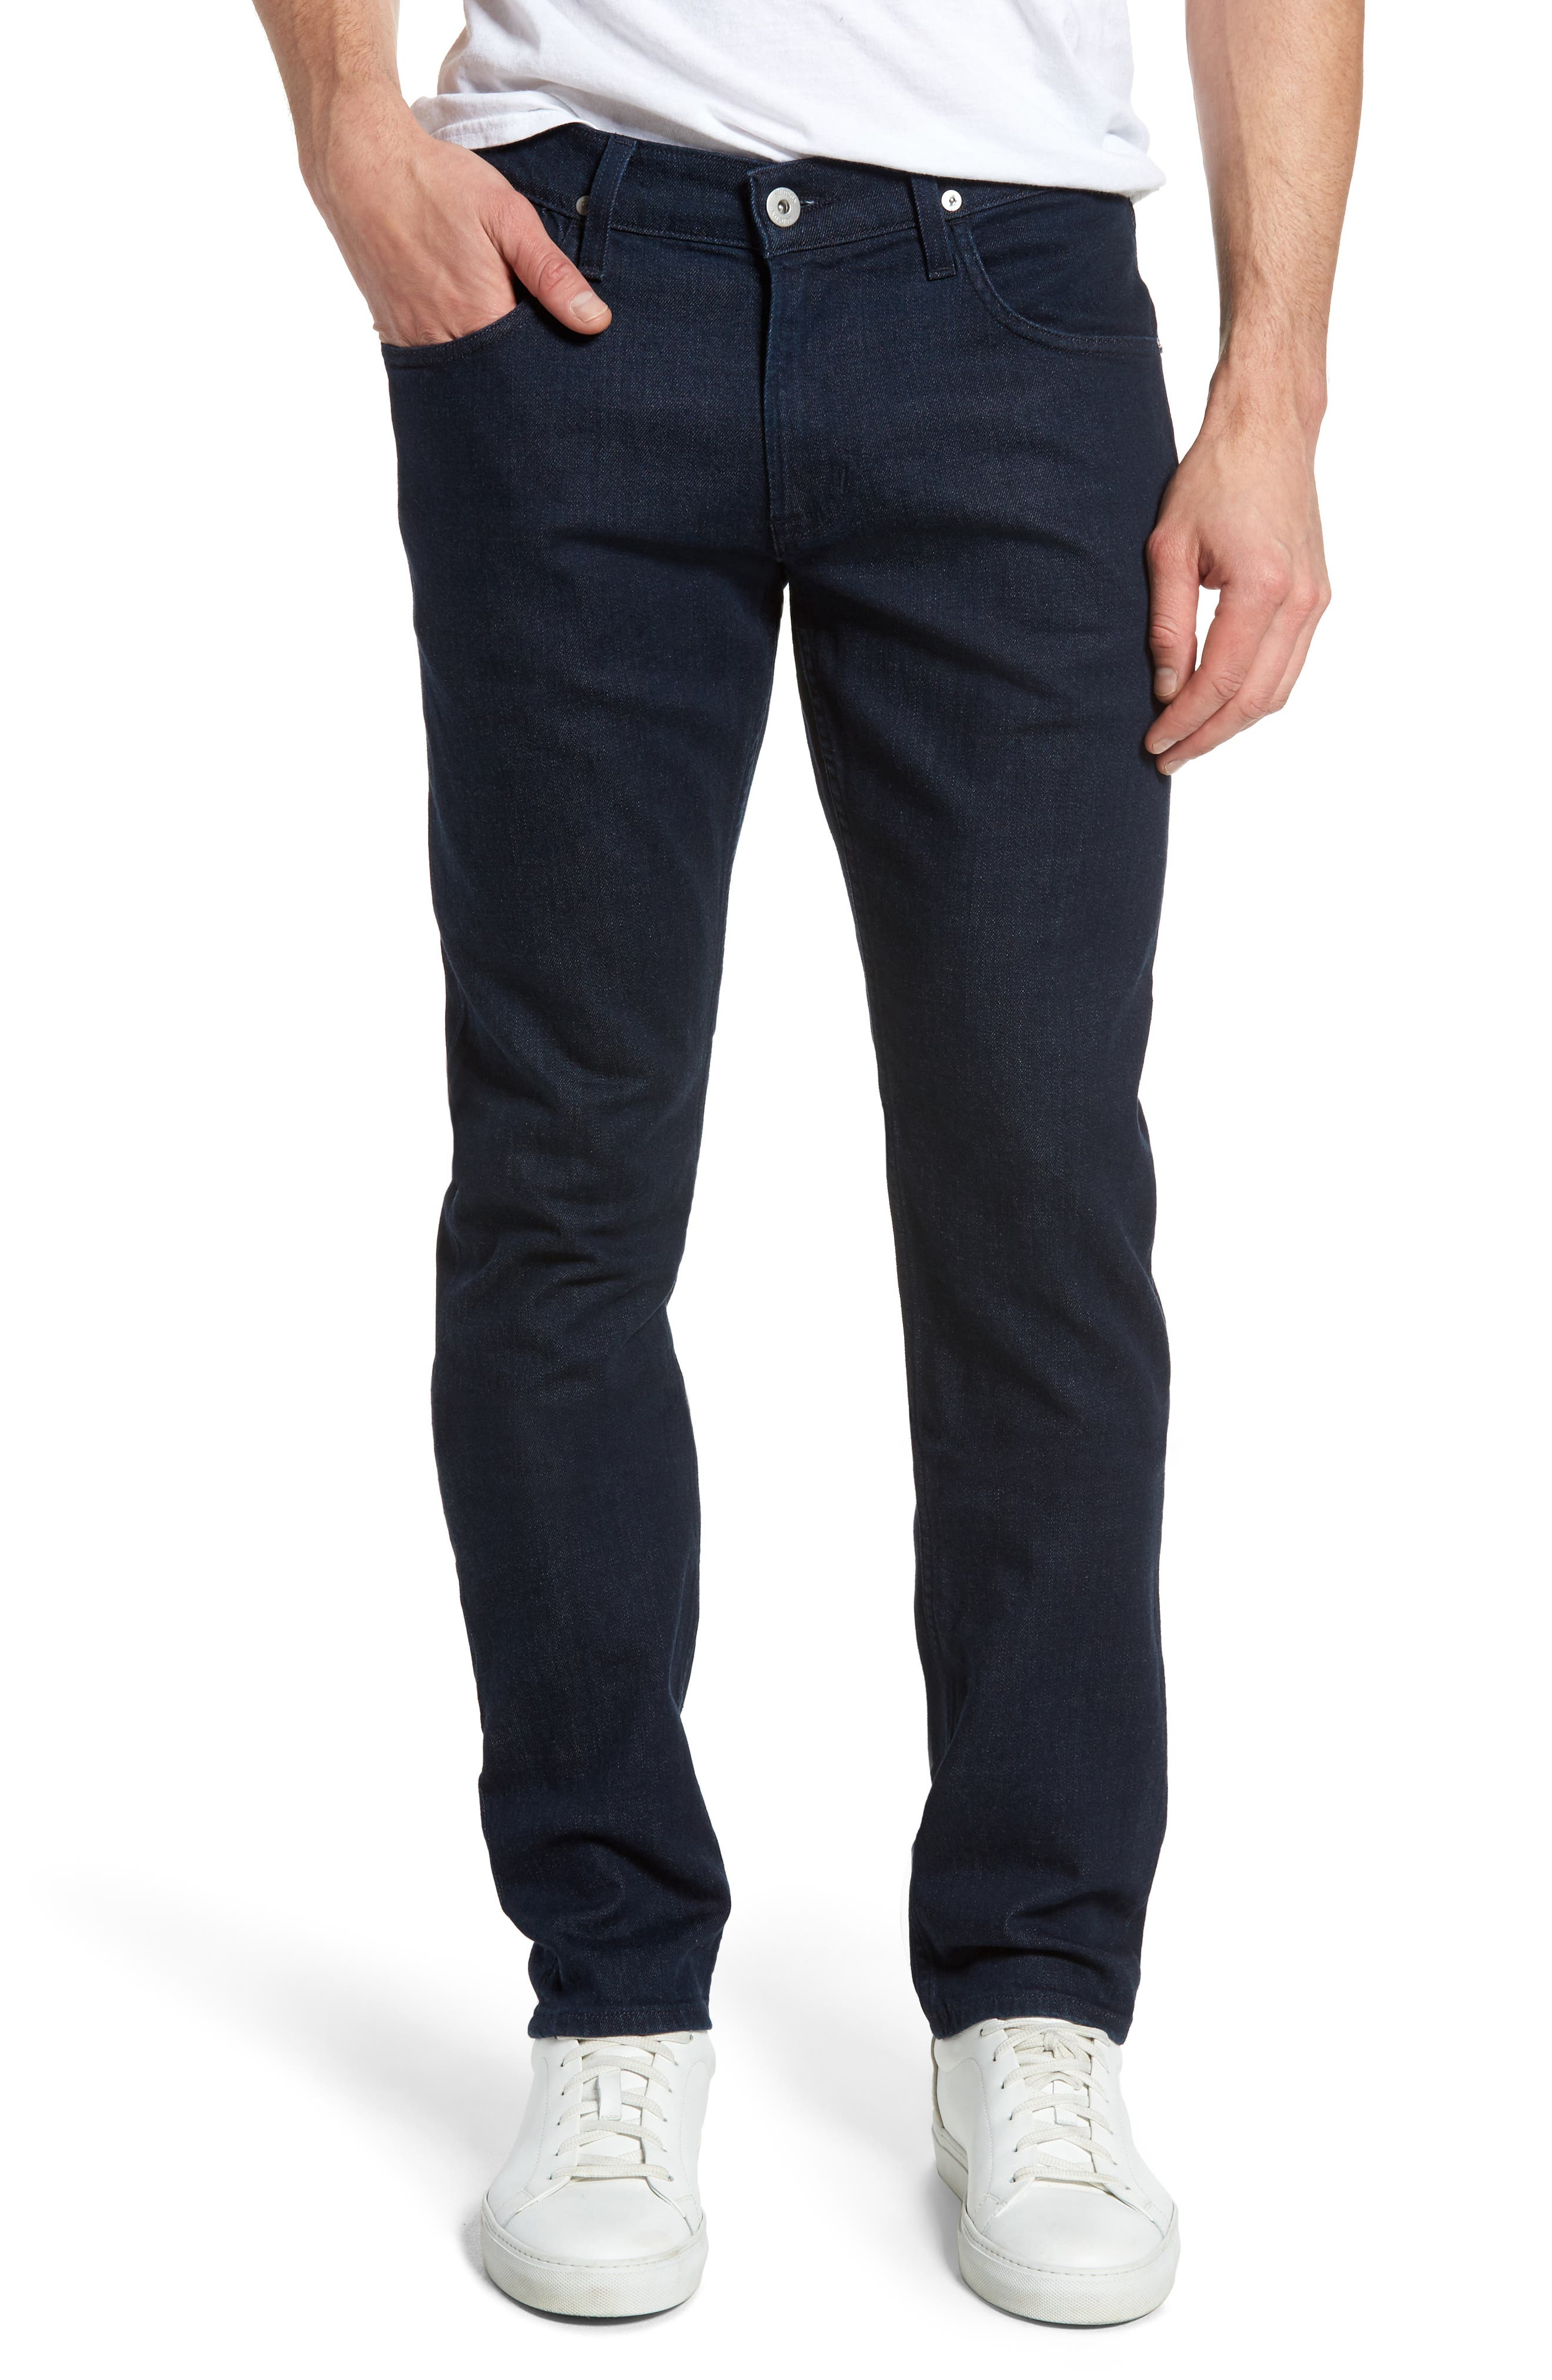 Blake Slim Fit Jeans,                         Main,                         color, 411